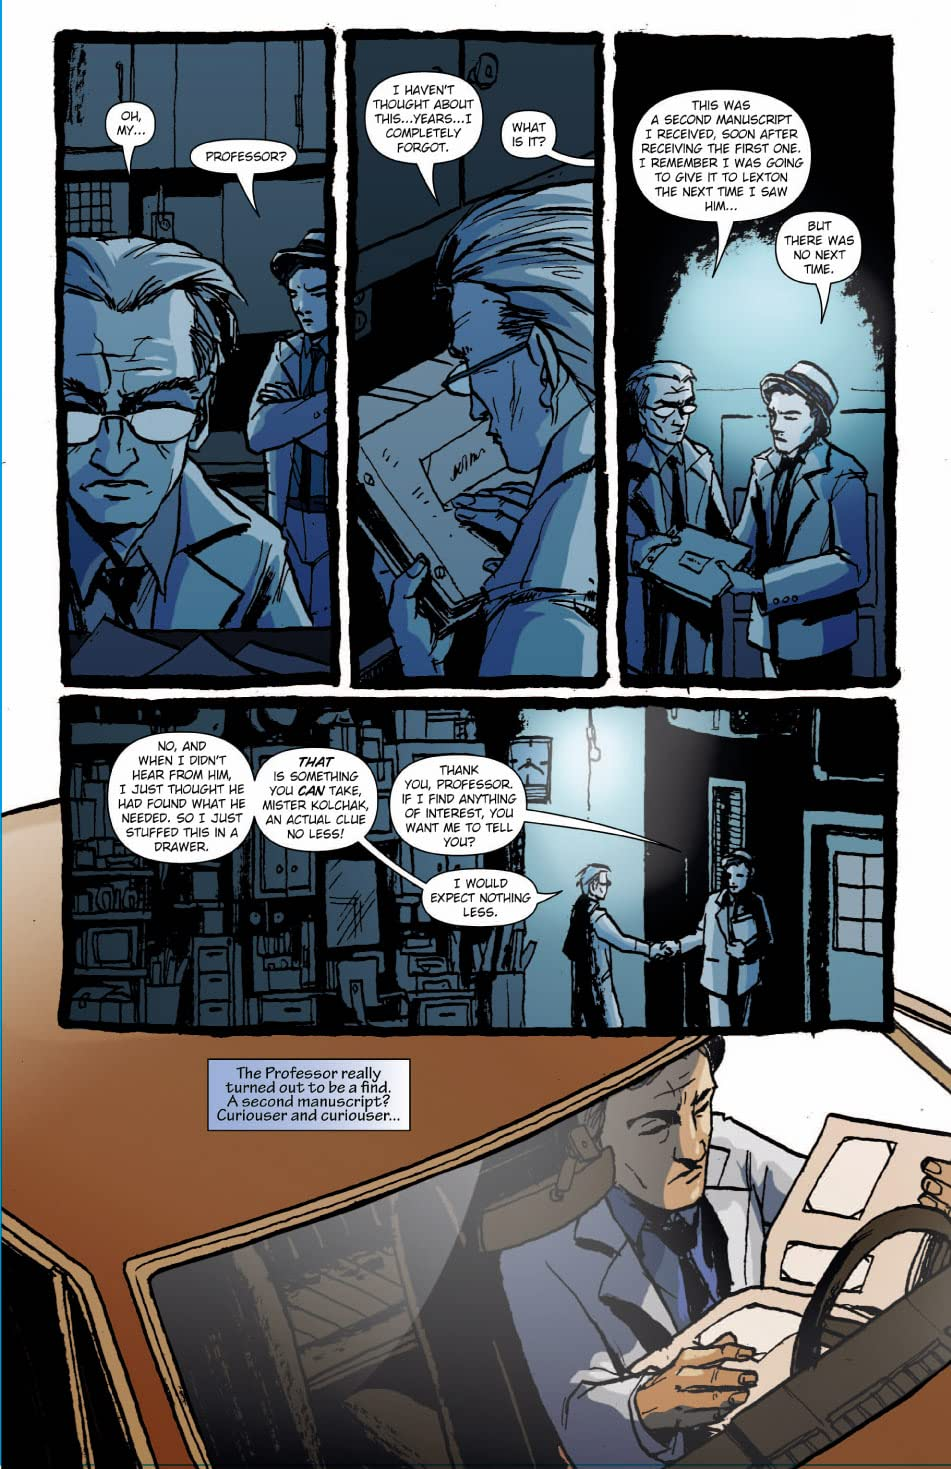 Sherlock Holmes & Kolchak: The Night Stalker #3 (of 3)